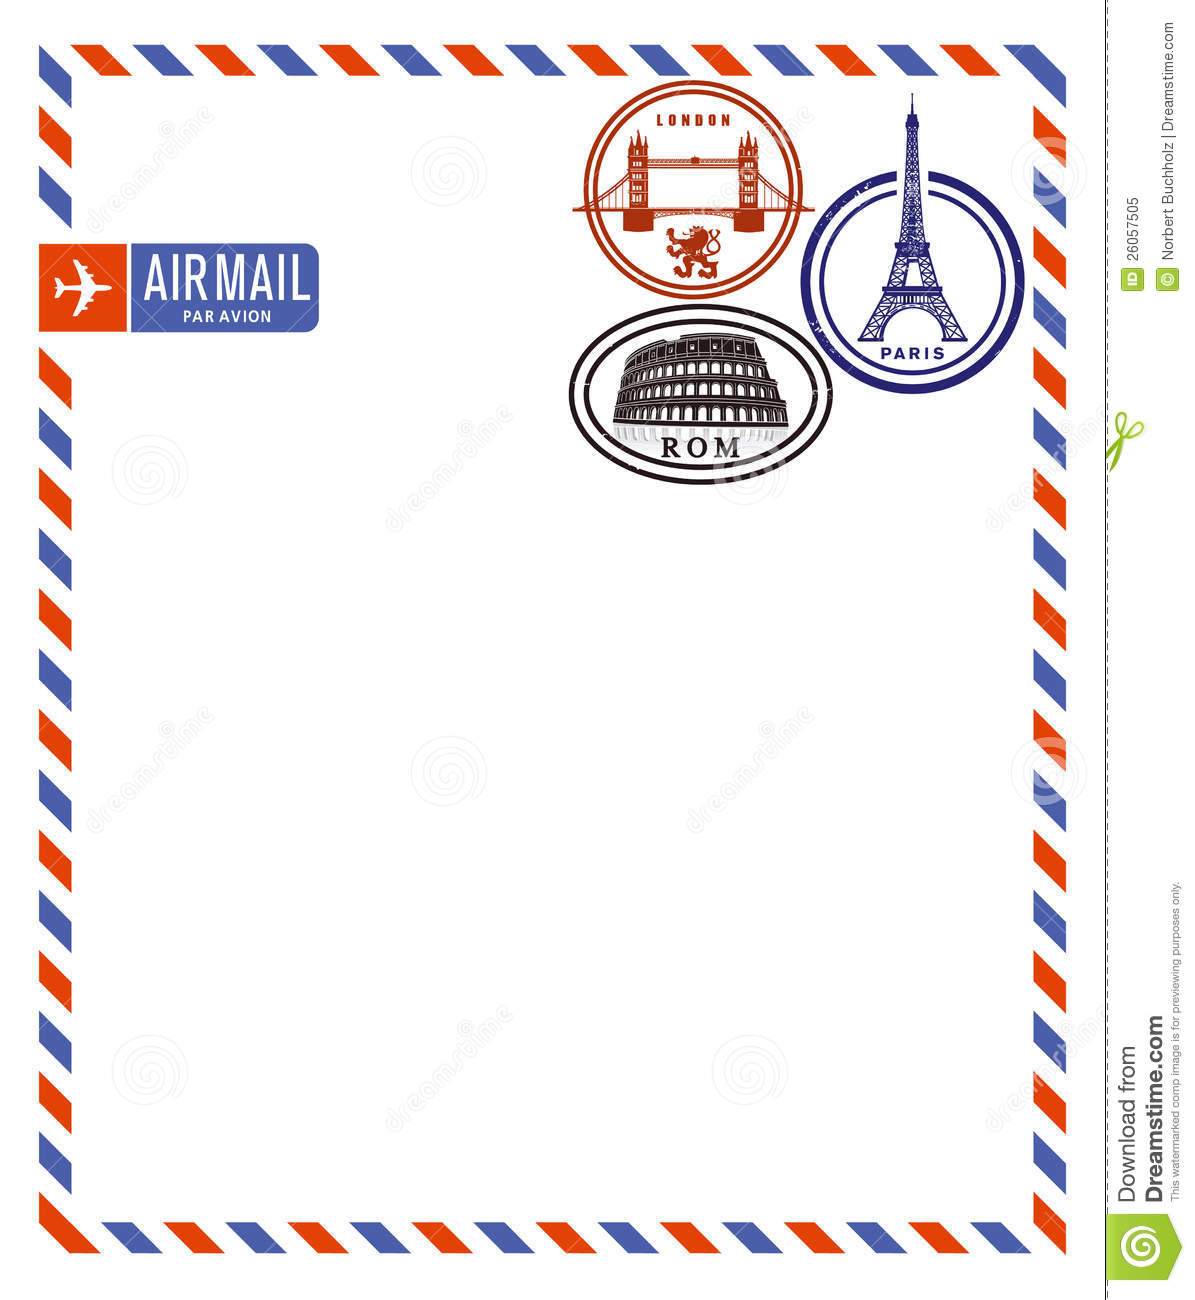 Air mail envelope and postage stamps from London, Paris and Rome.